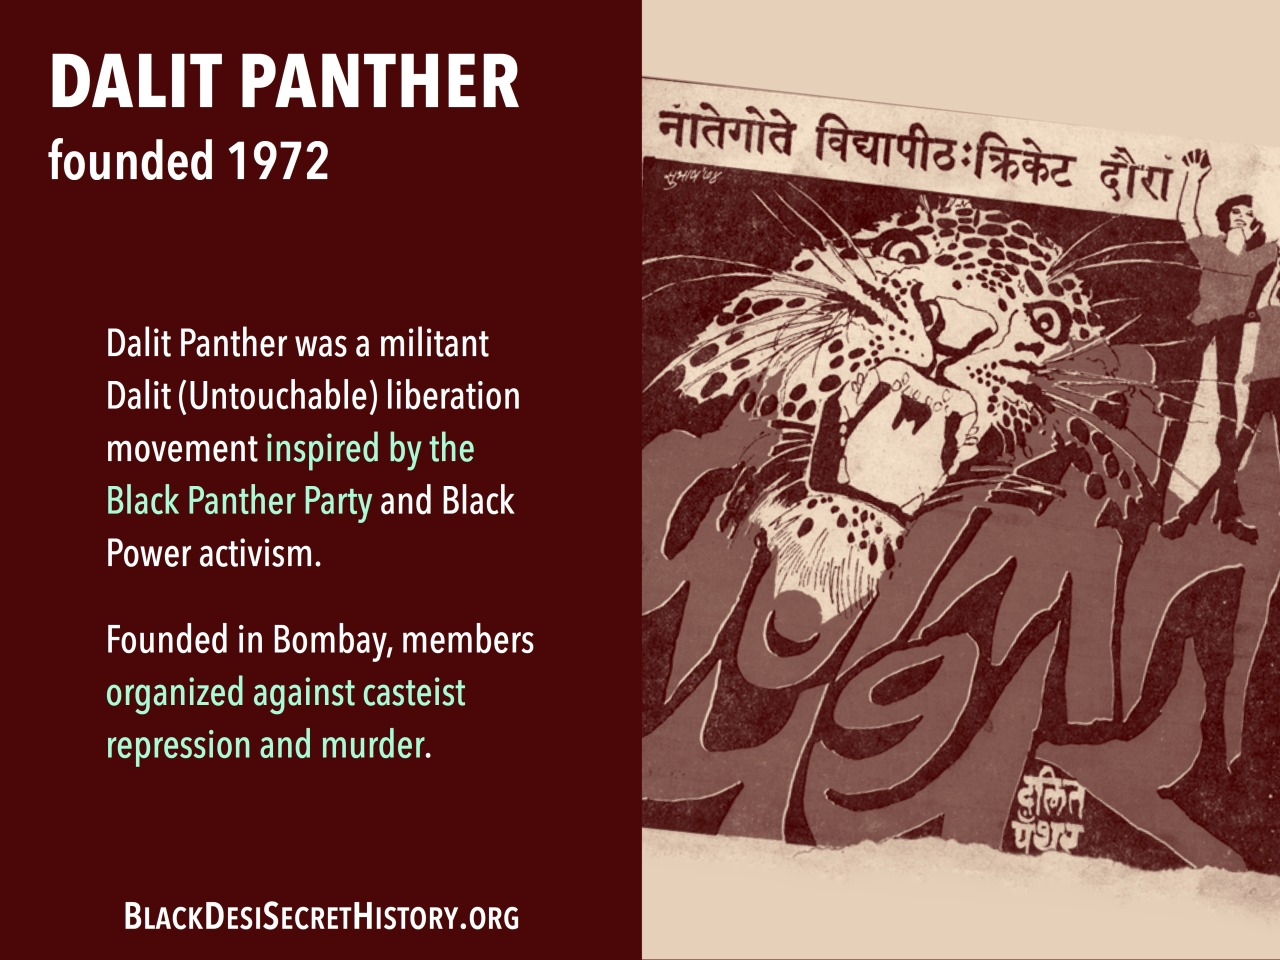 DALIT PANTHER,